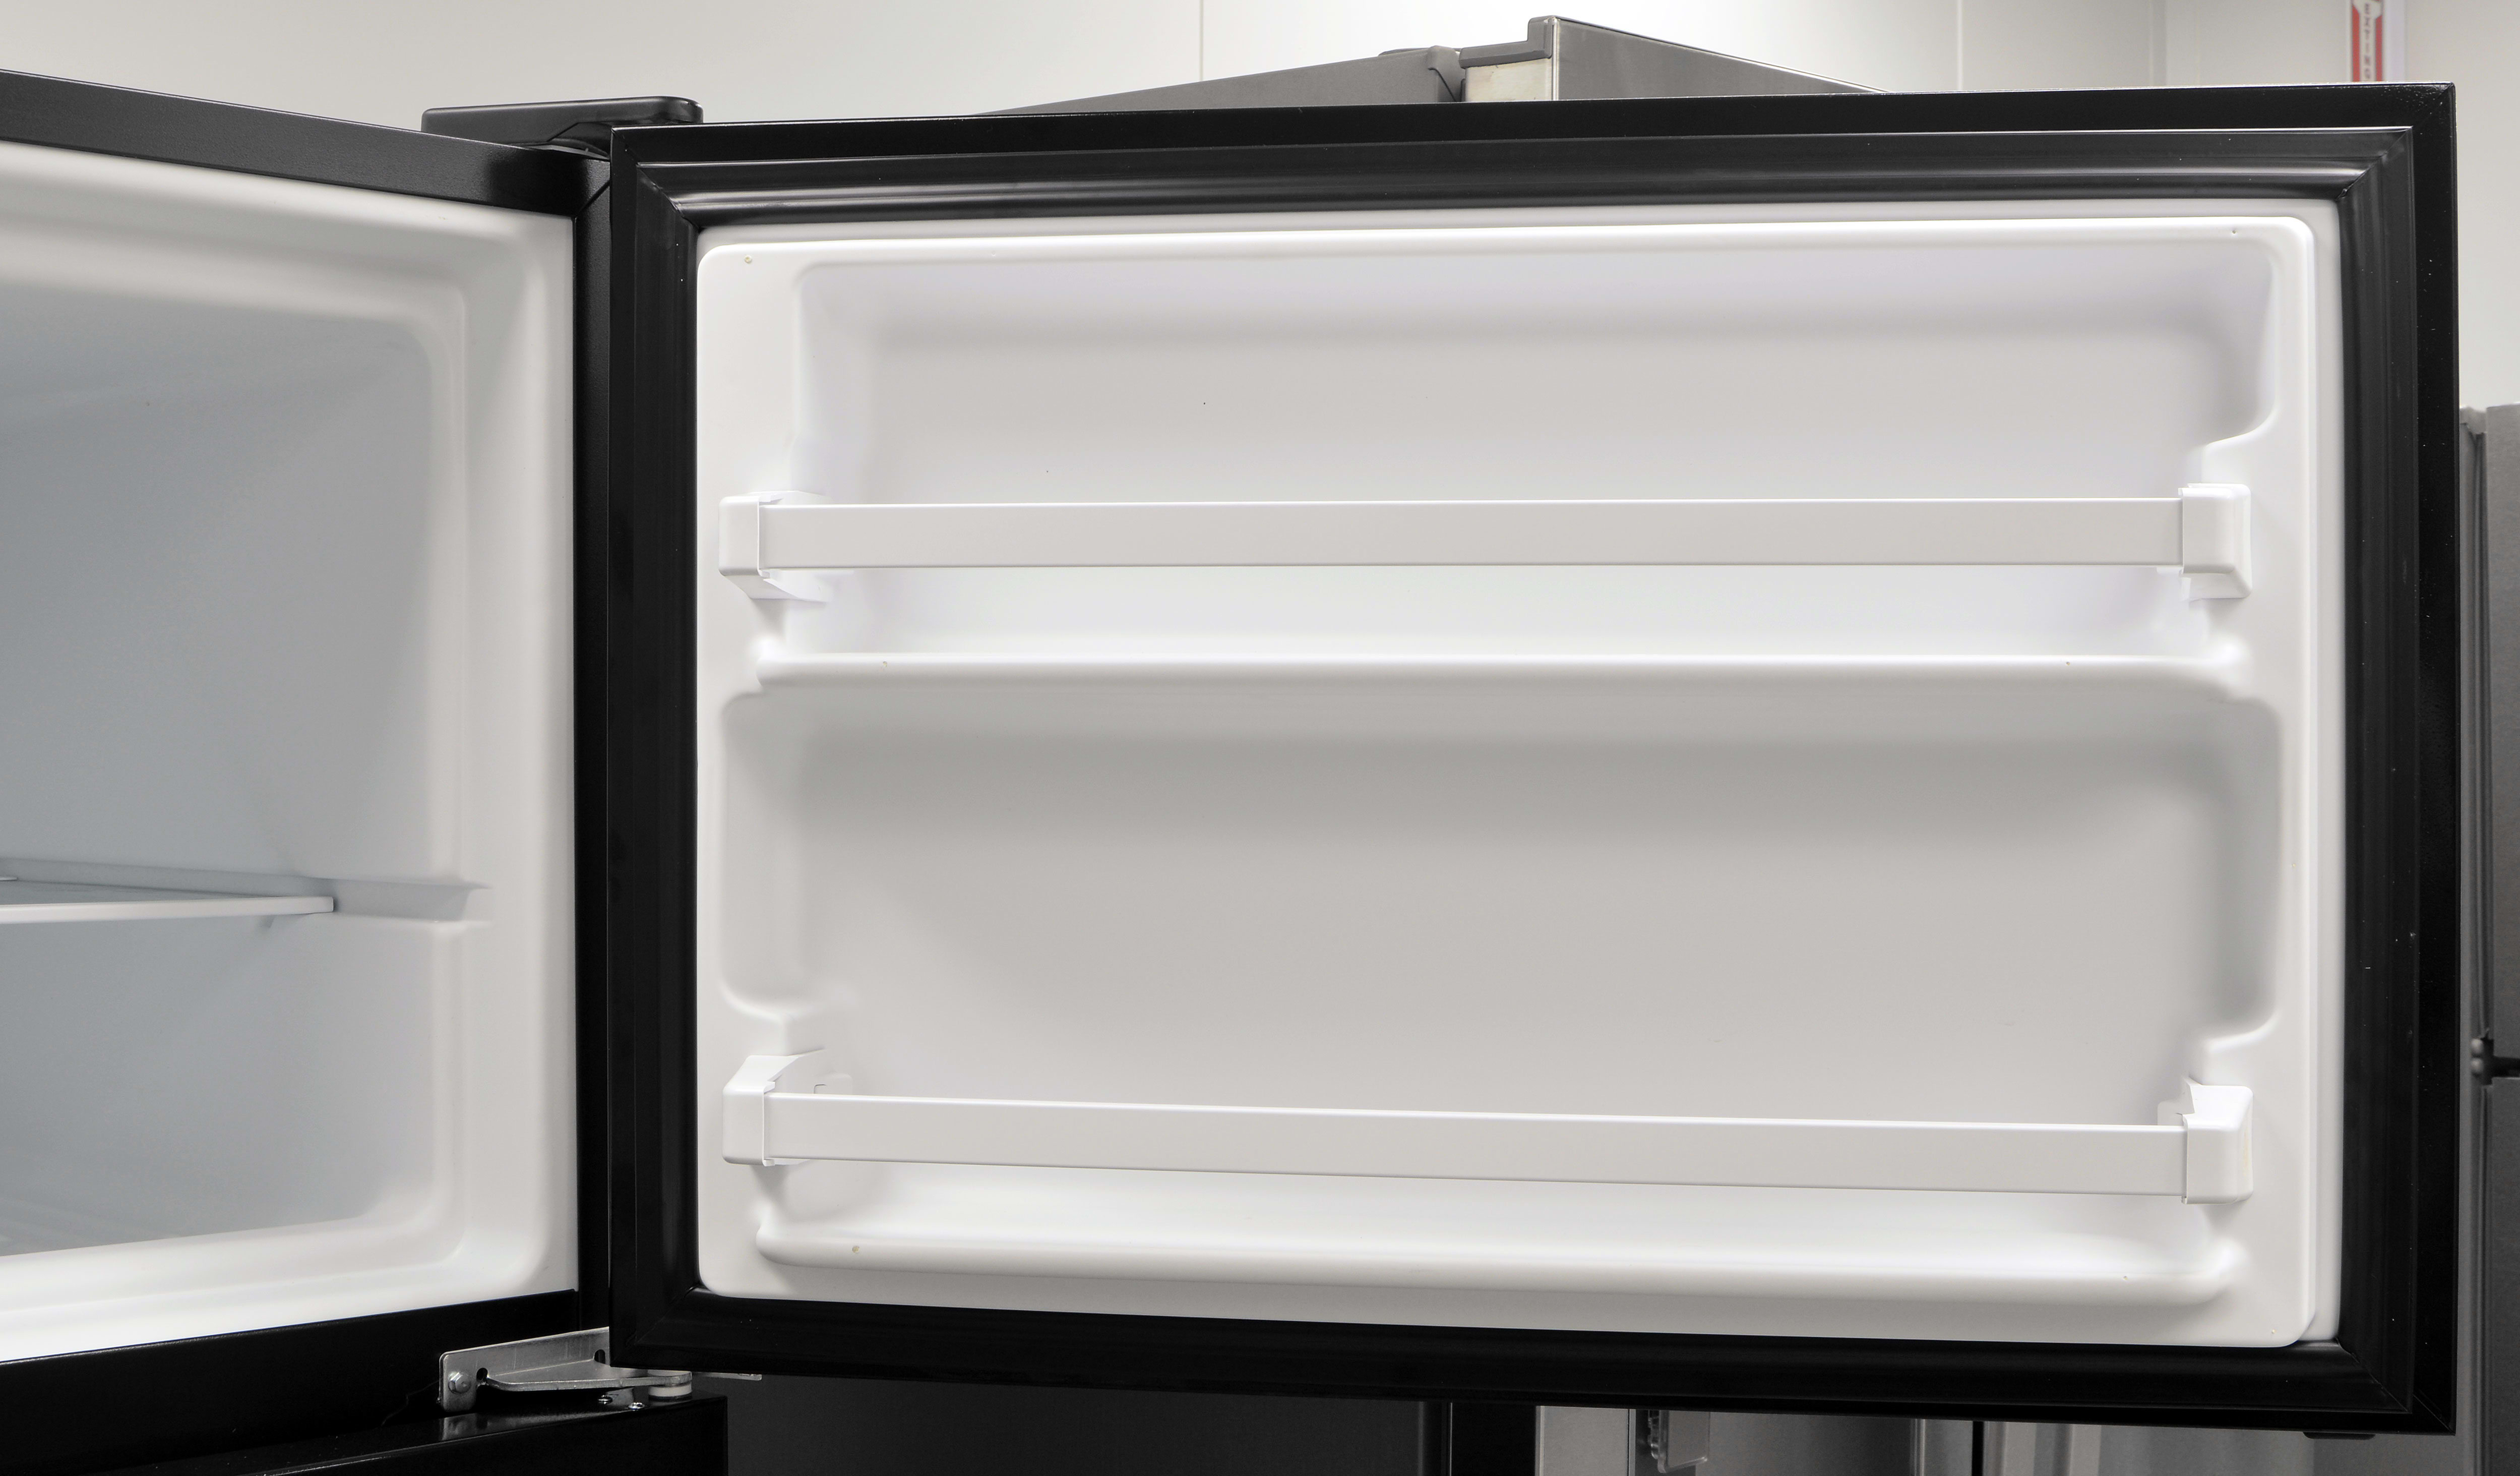 The Whirlpool WRT318FZDB's basic freezer door – seen one, ya seen 'em all.